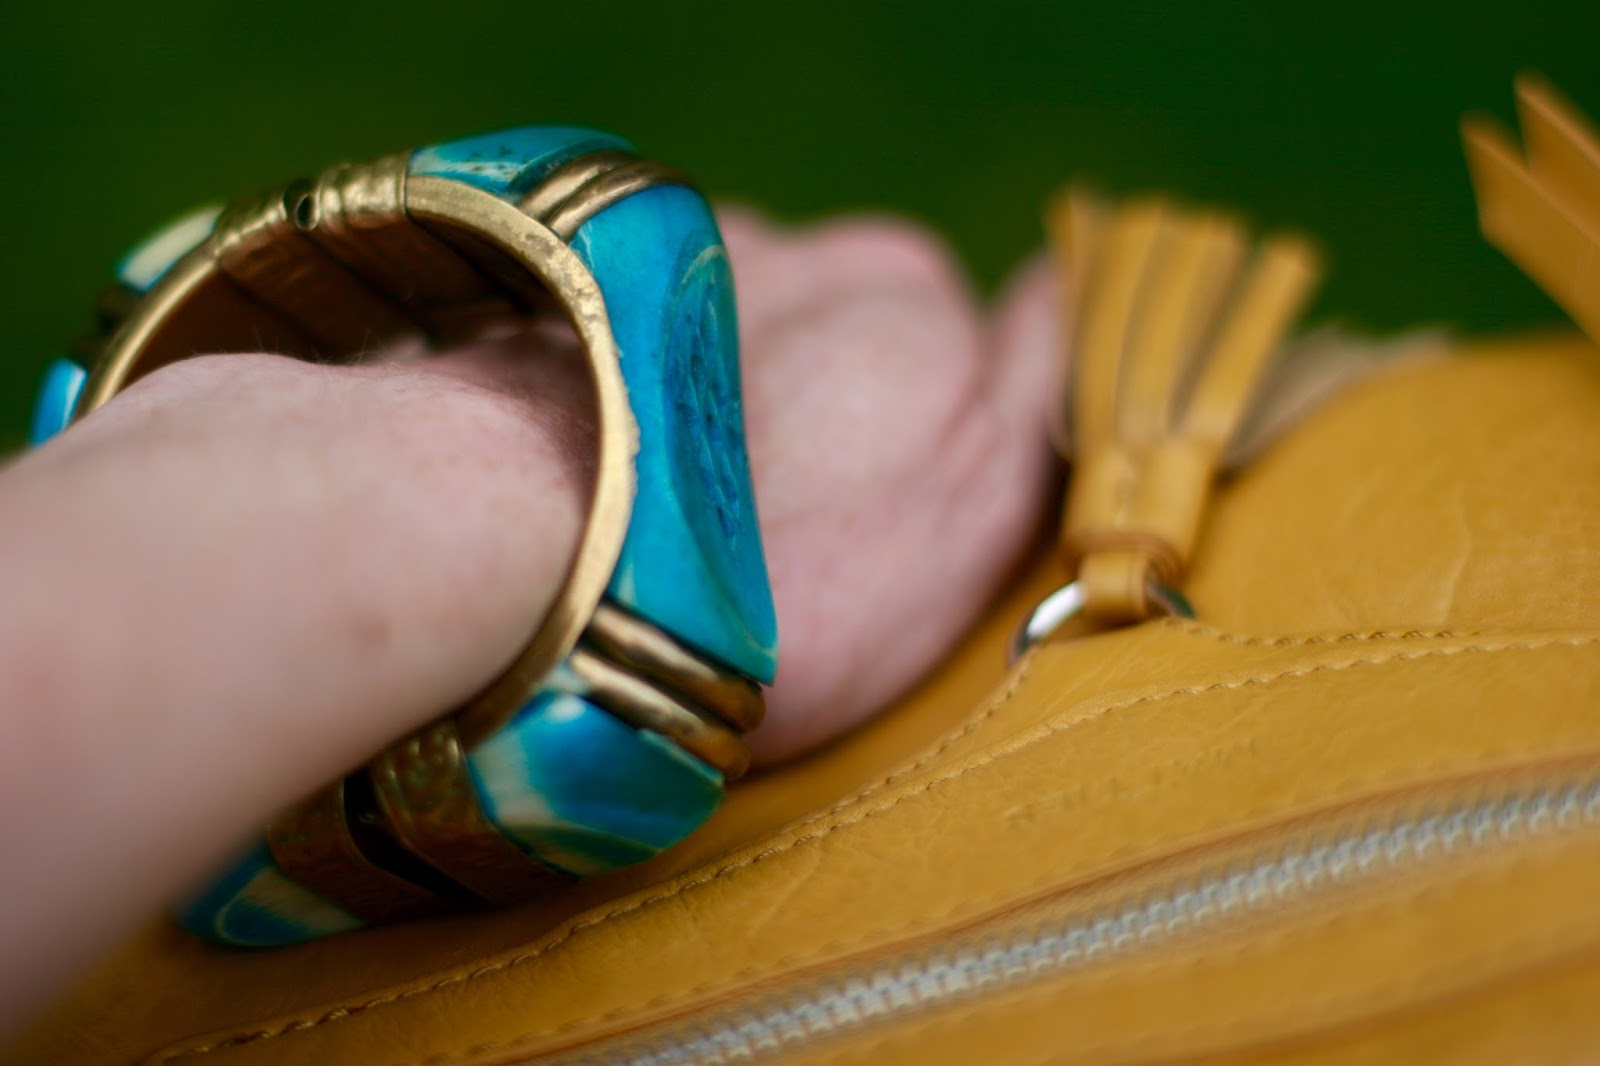 Vintage bangle and a yellow bag.